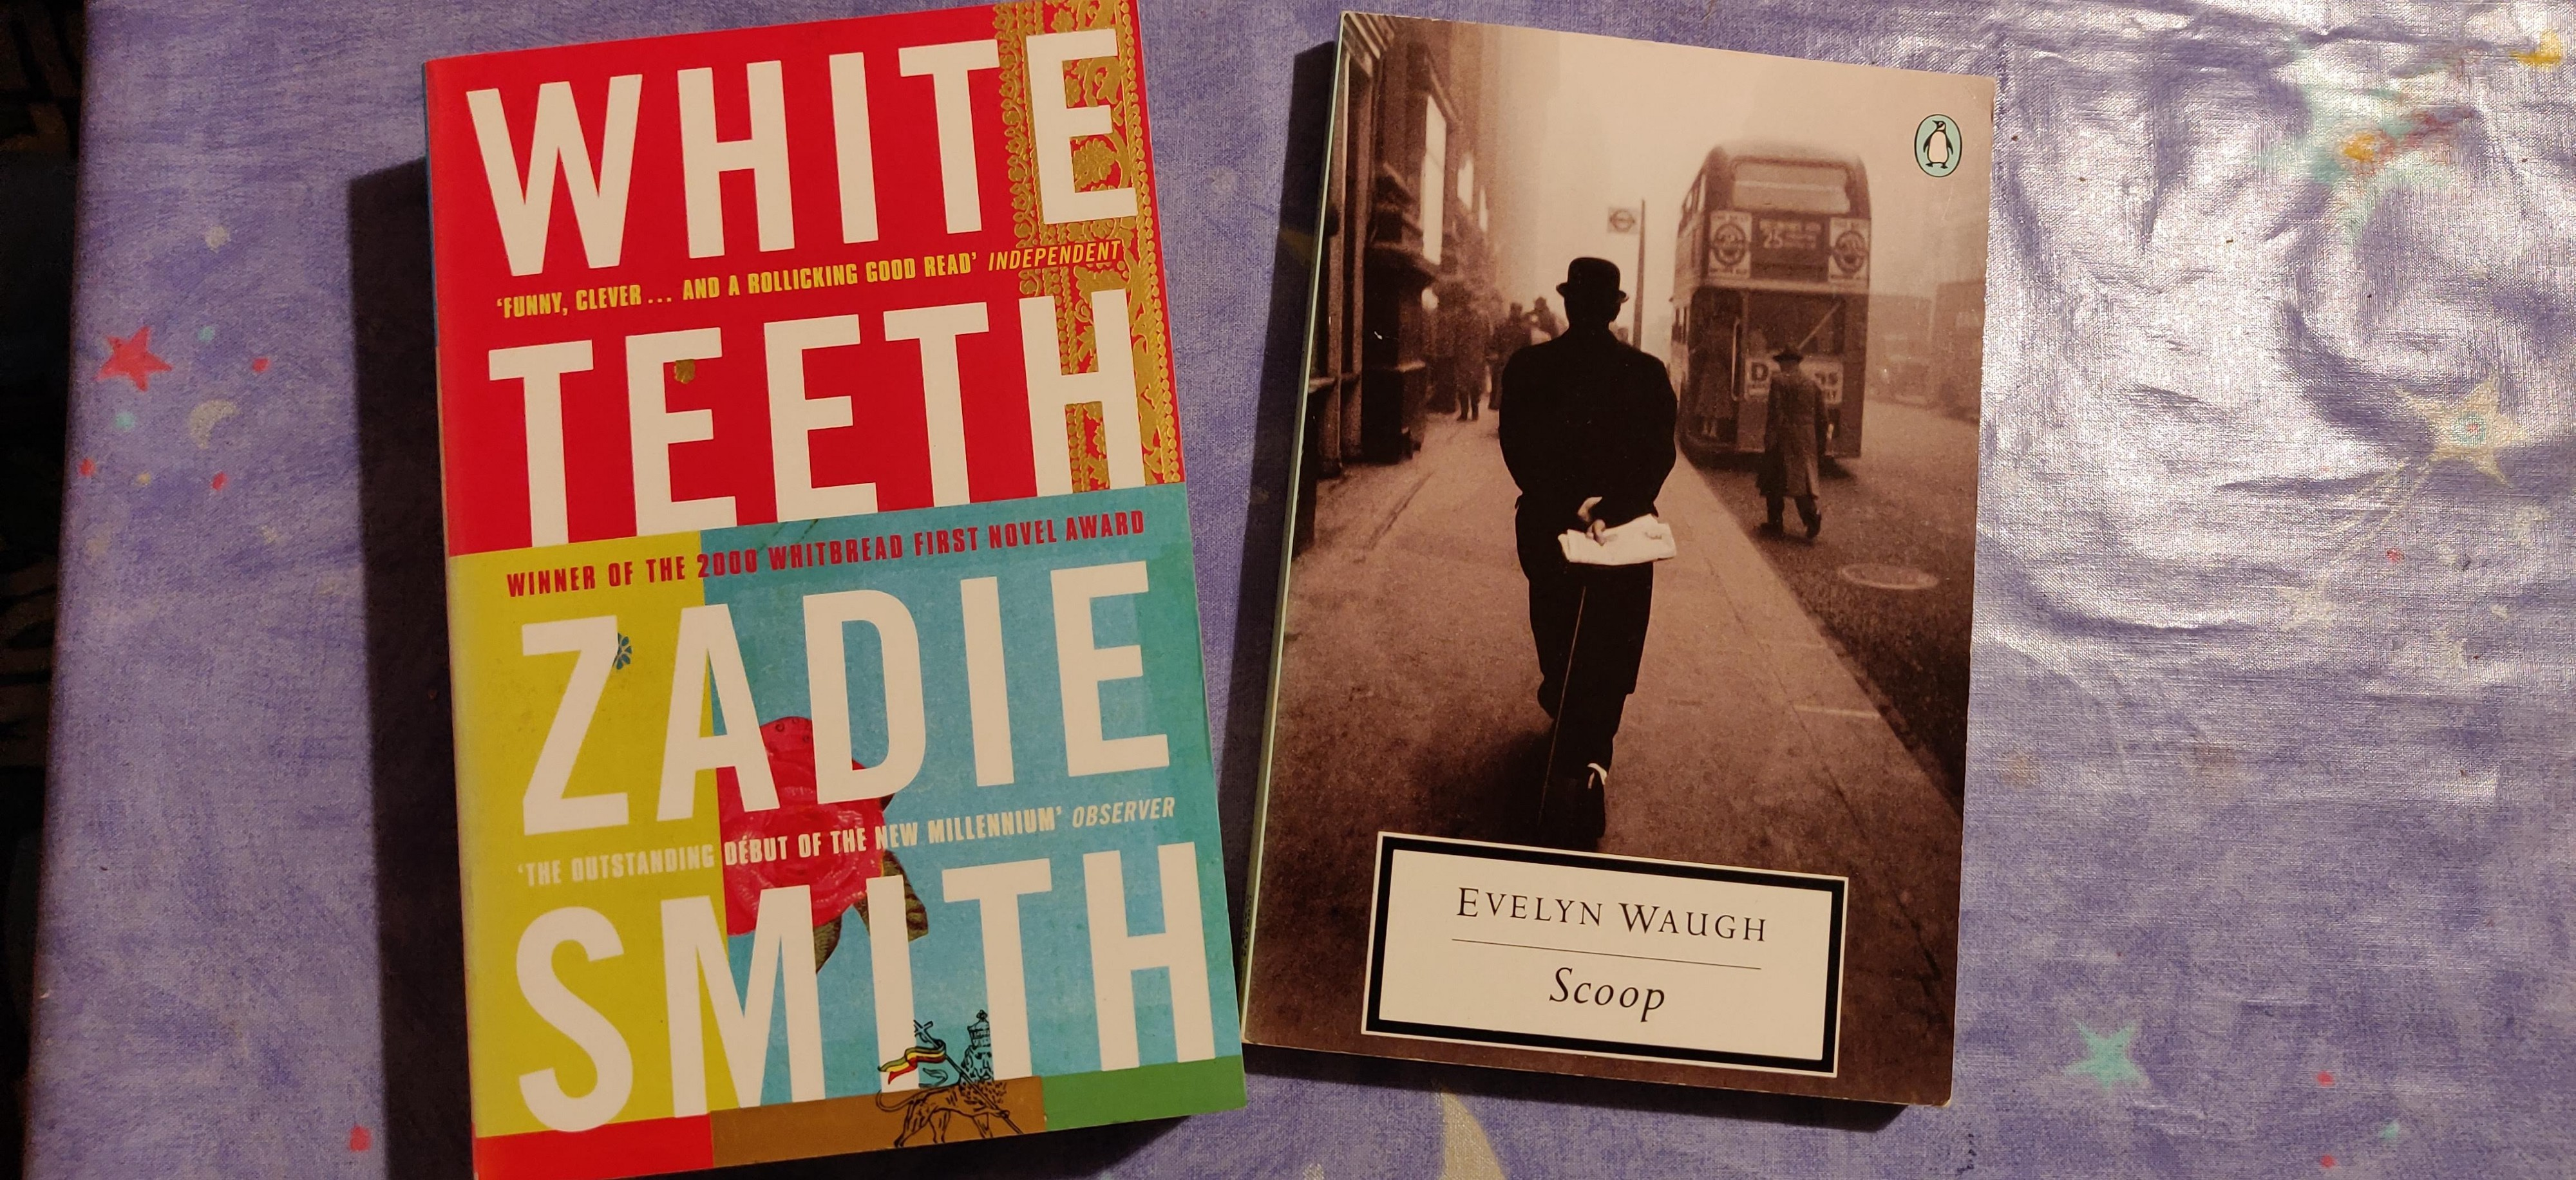 A photo of the books White Teeth and Scoop on my dining room table